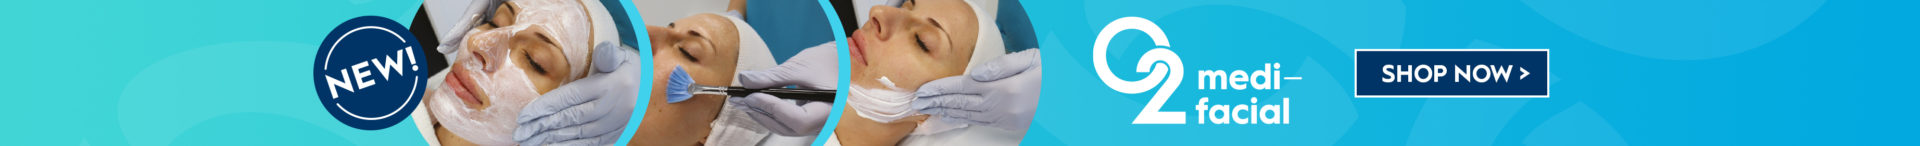 laser hair removal, skin treatments and cosmetic injectable experts